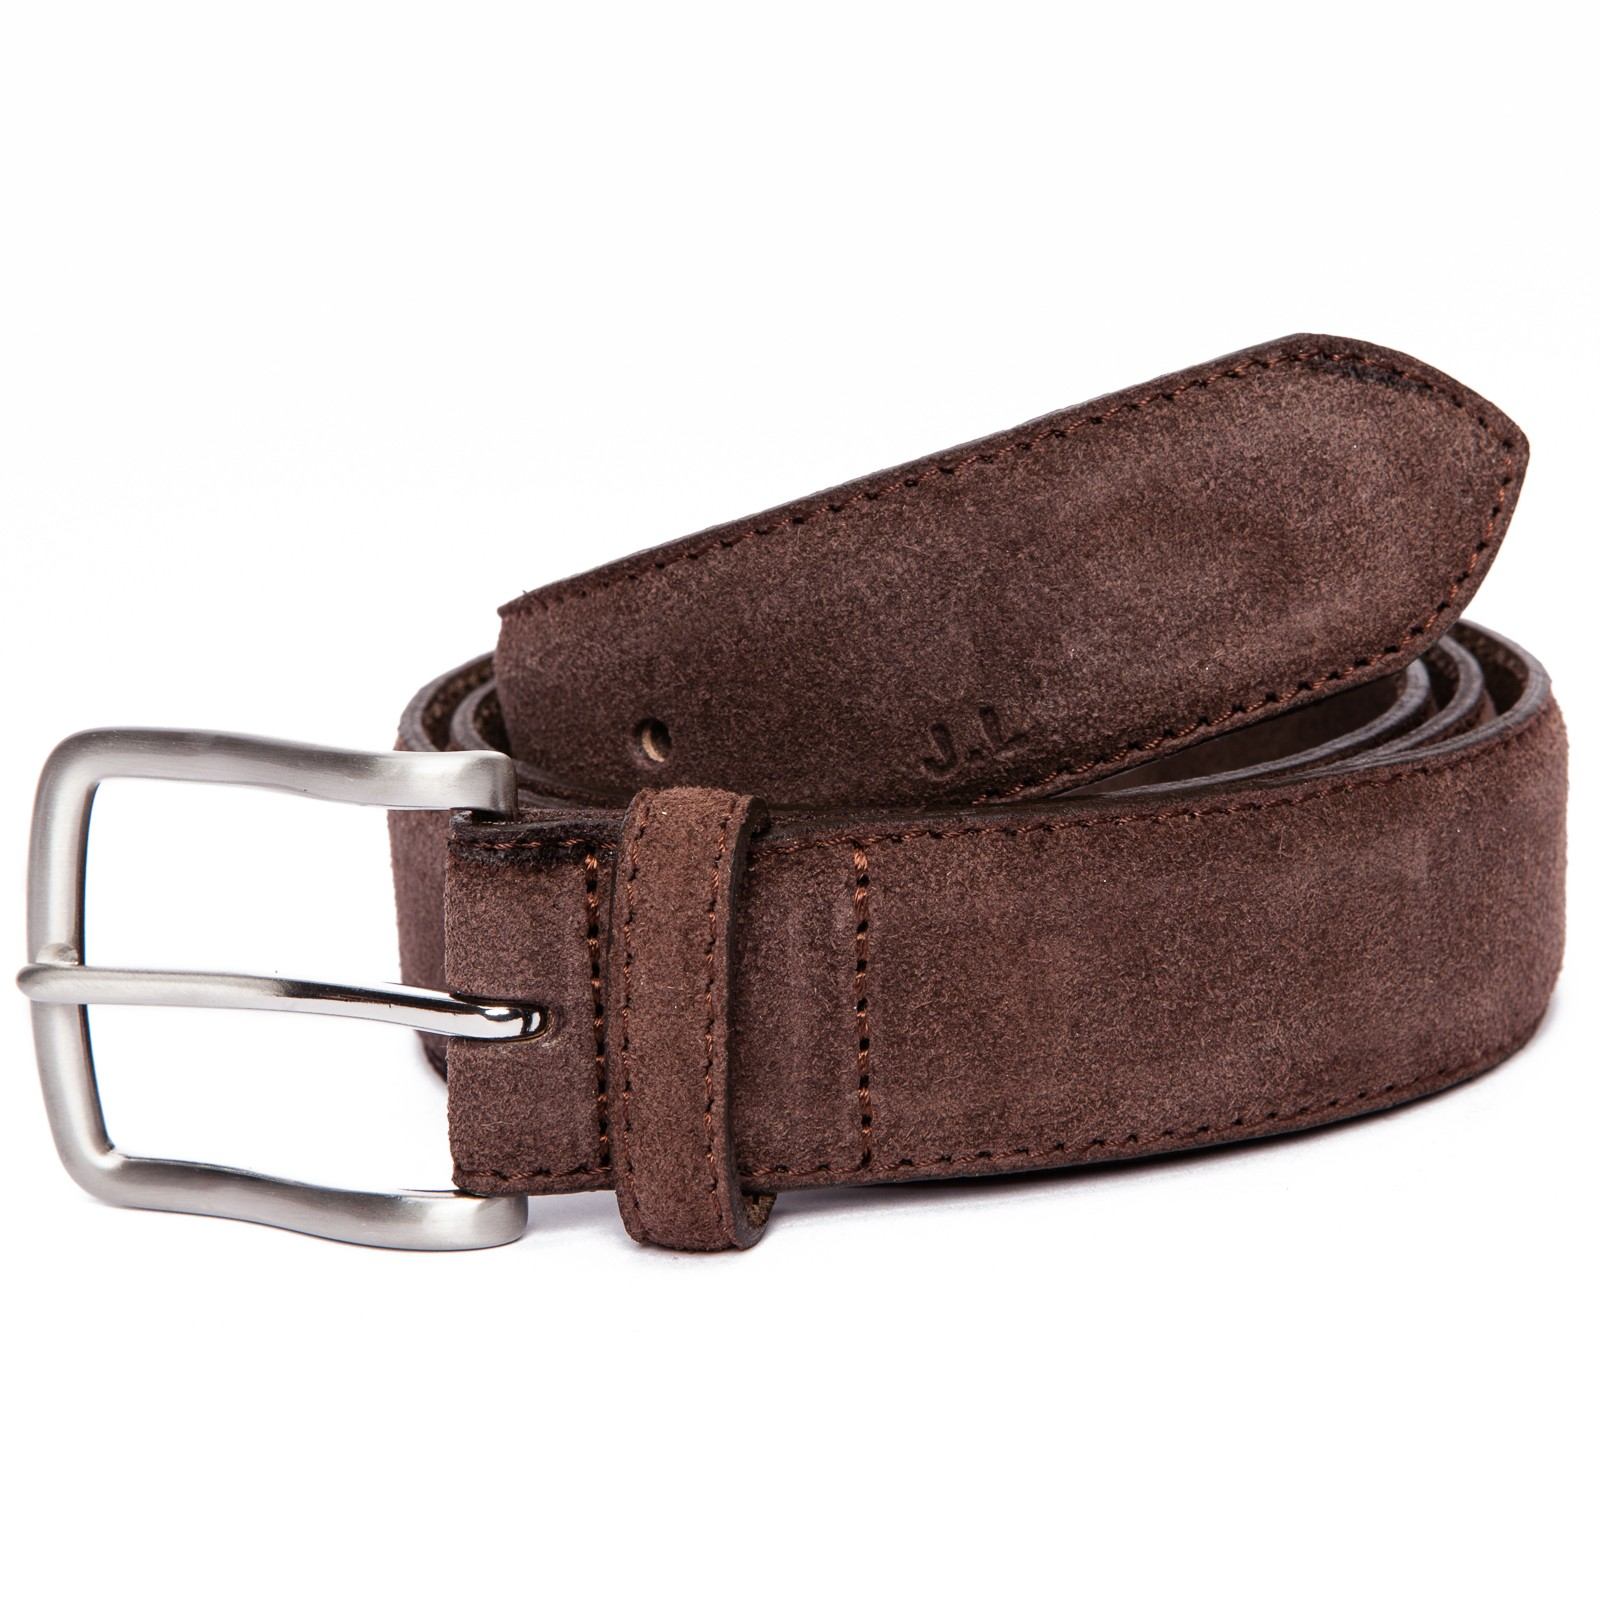 j lindeberg classic suede belt in brown for lyst